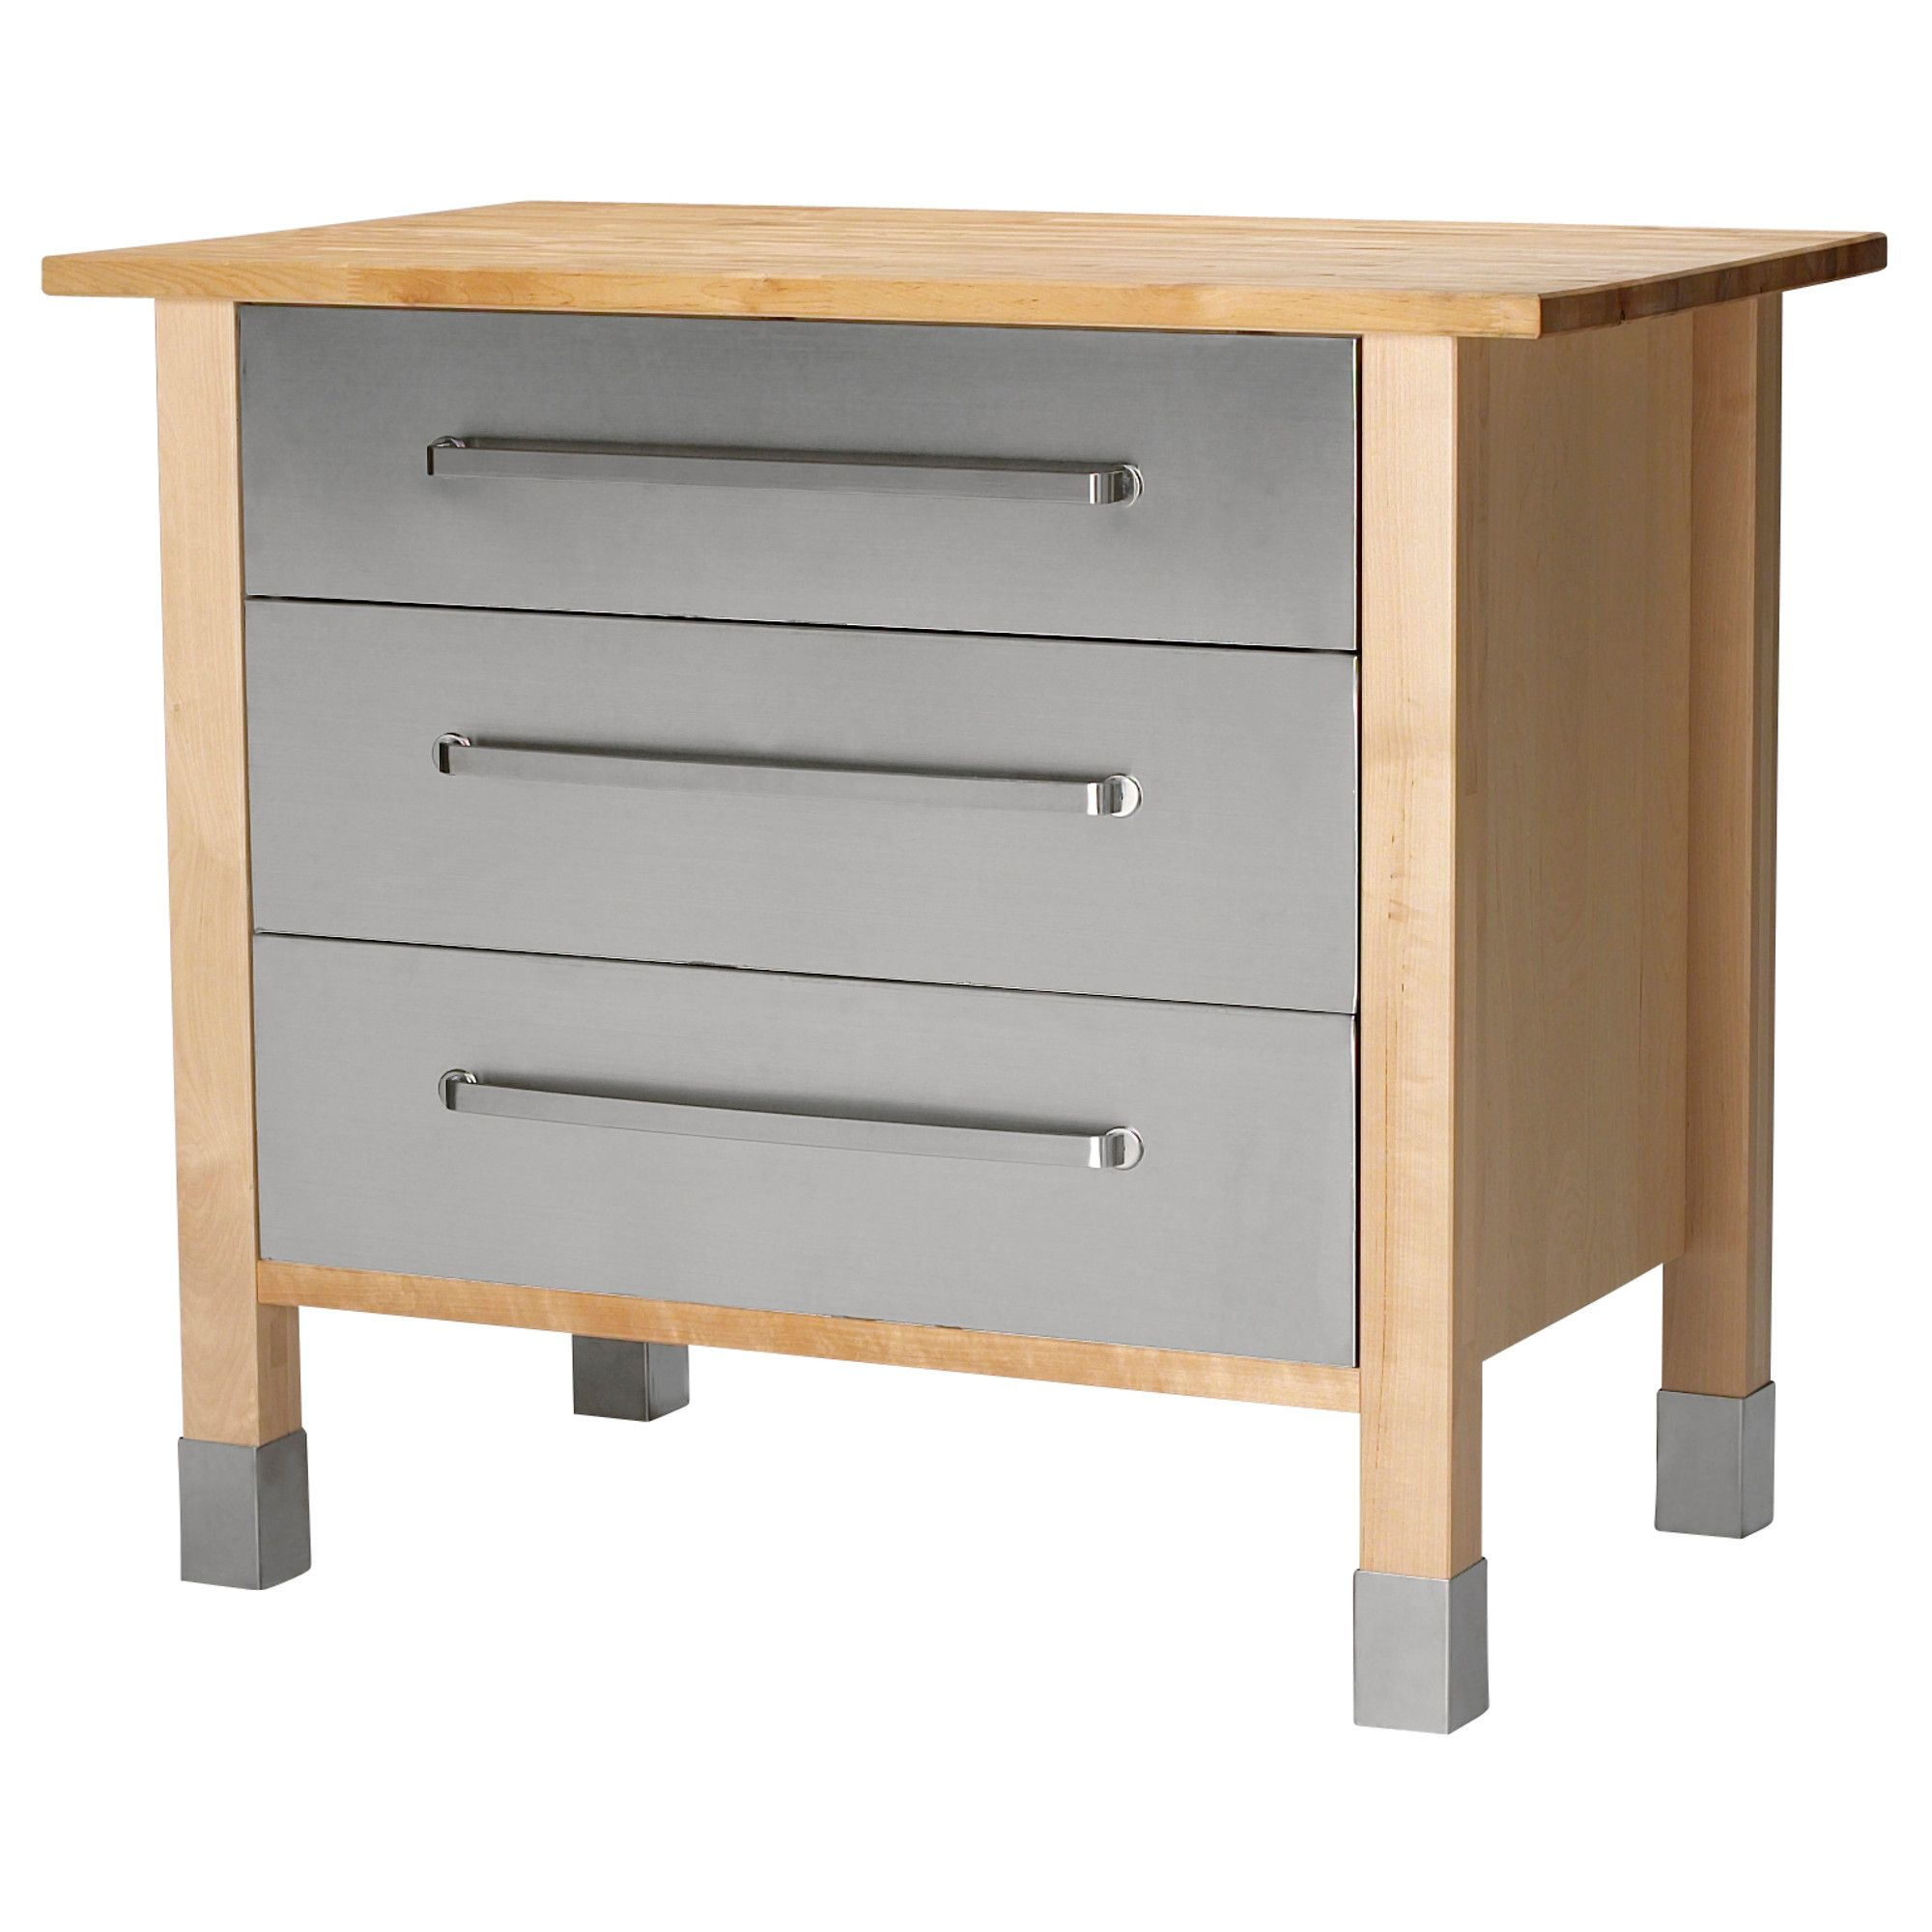 V 196 Rde Ladekast Ikea Ikea Pinterest Drawer Unit